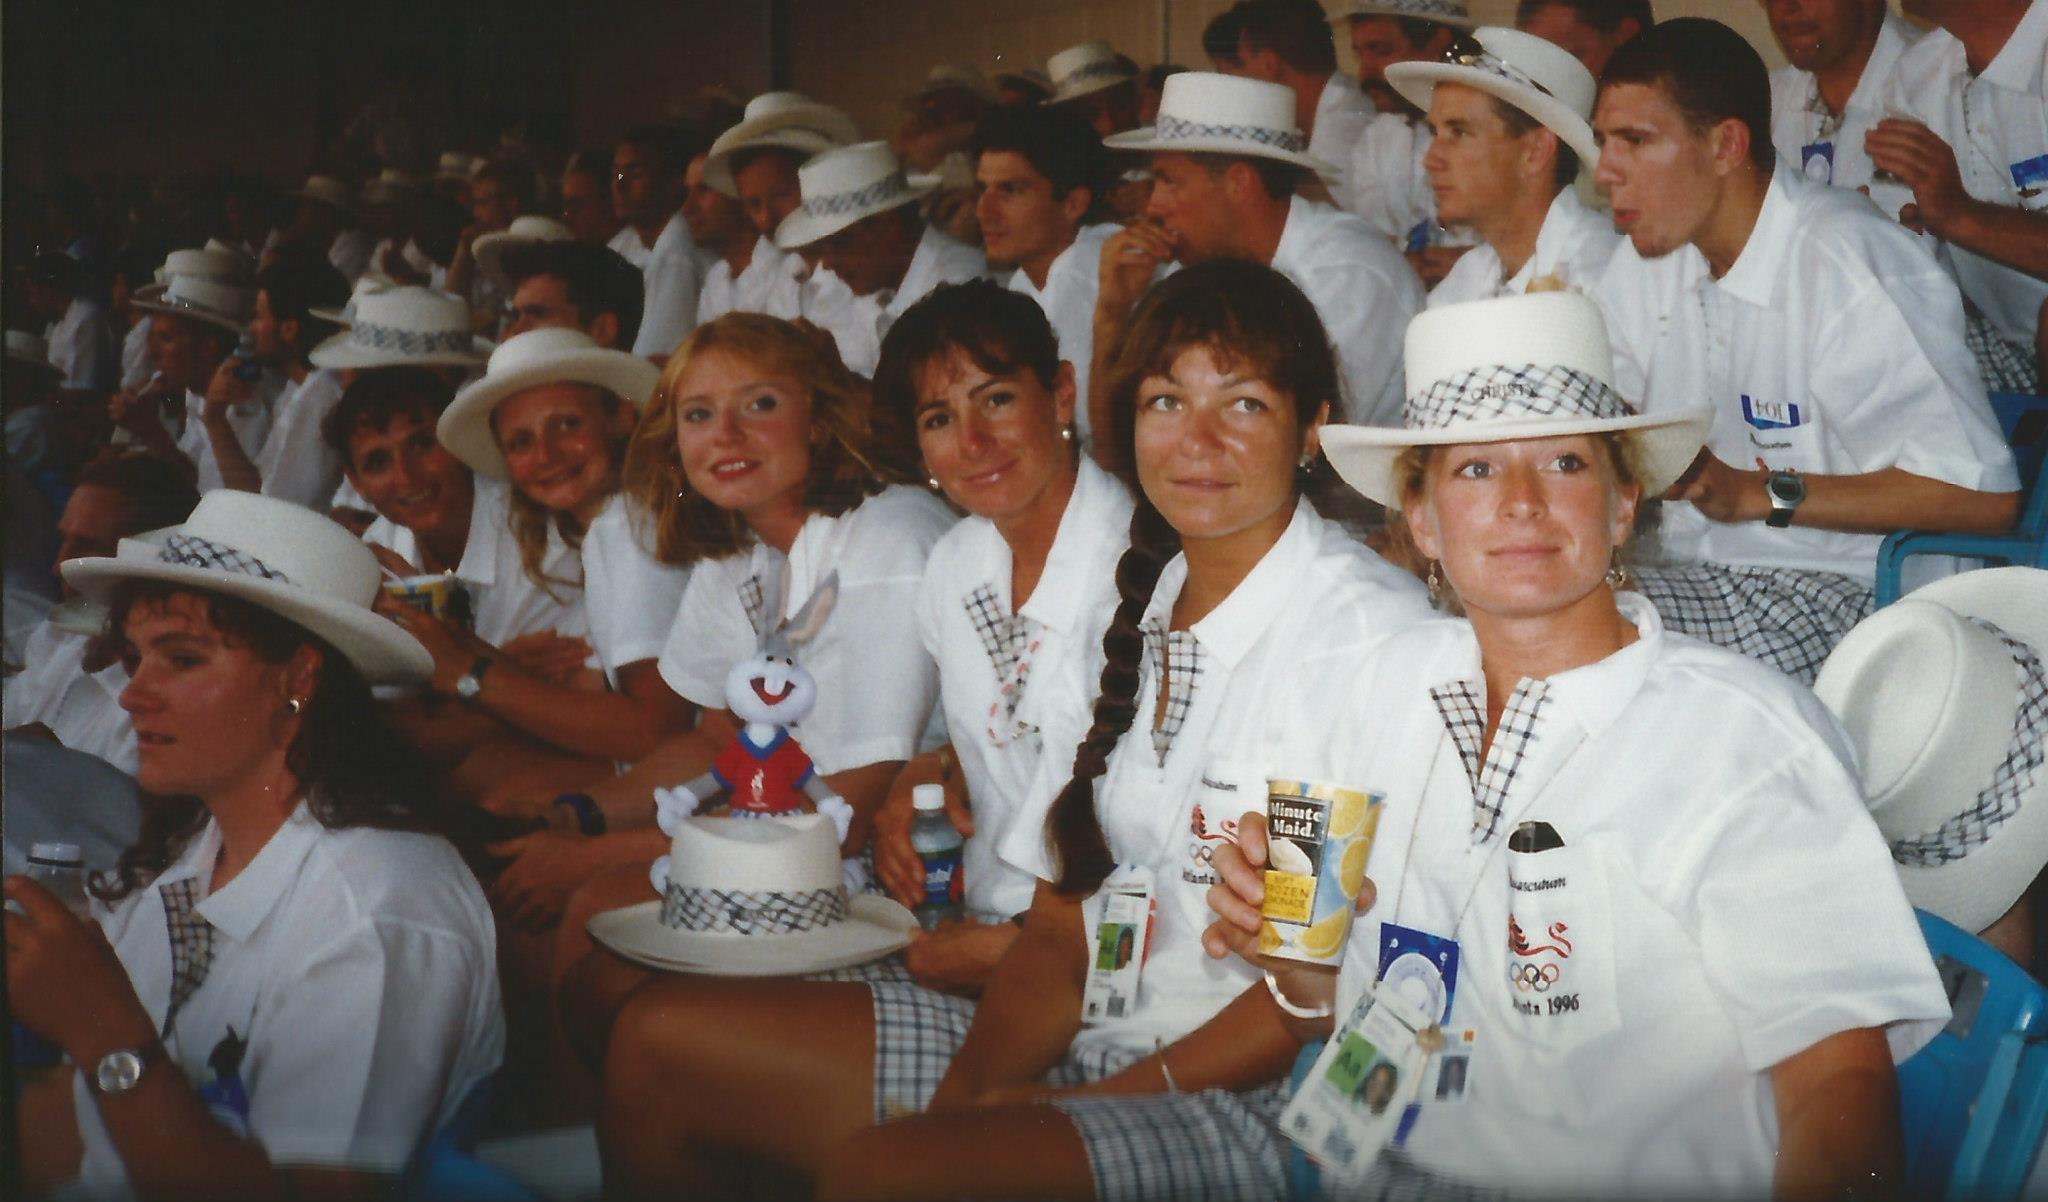 Women at opening ceremony